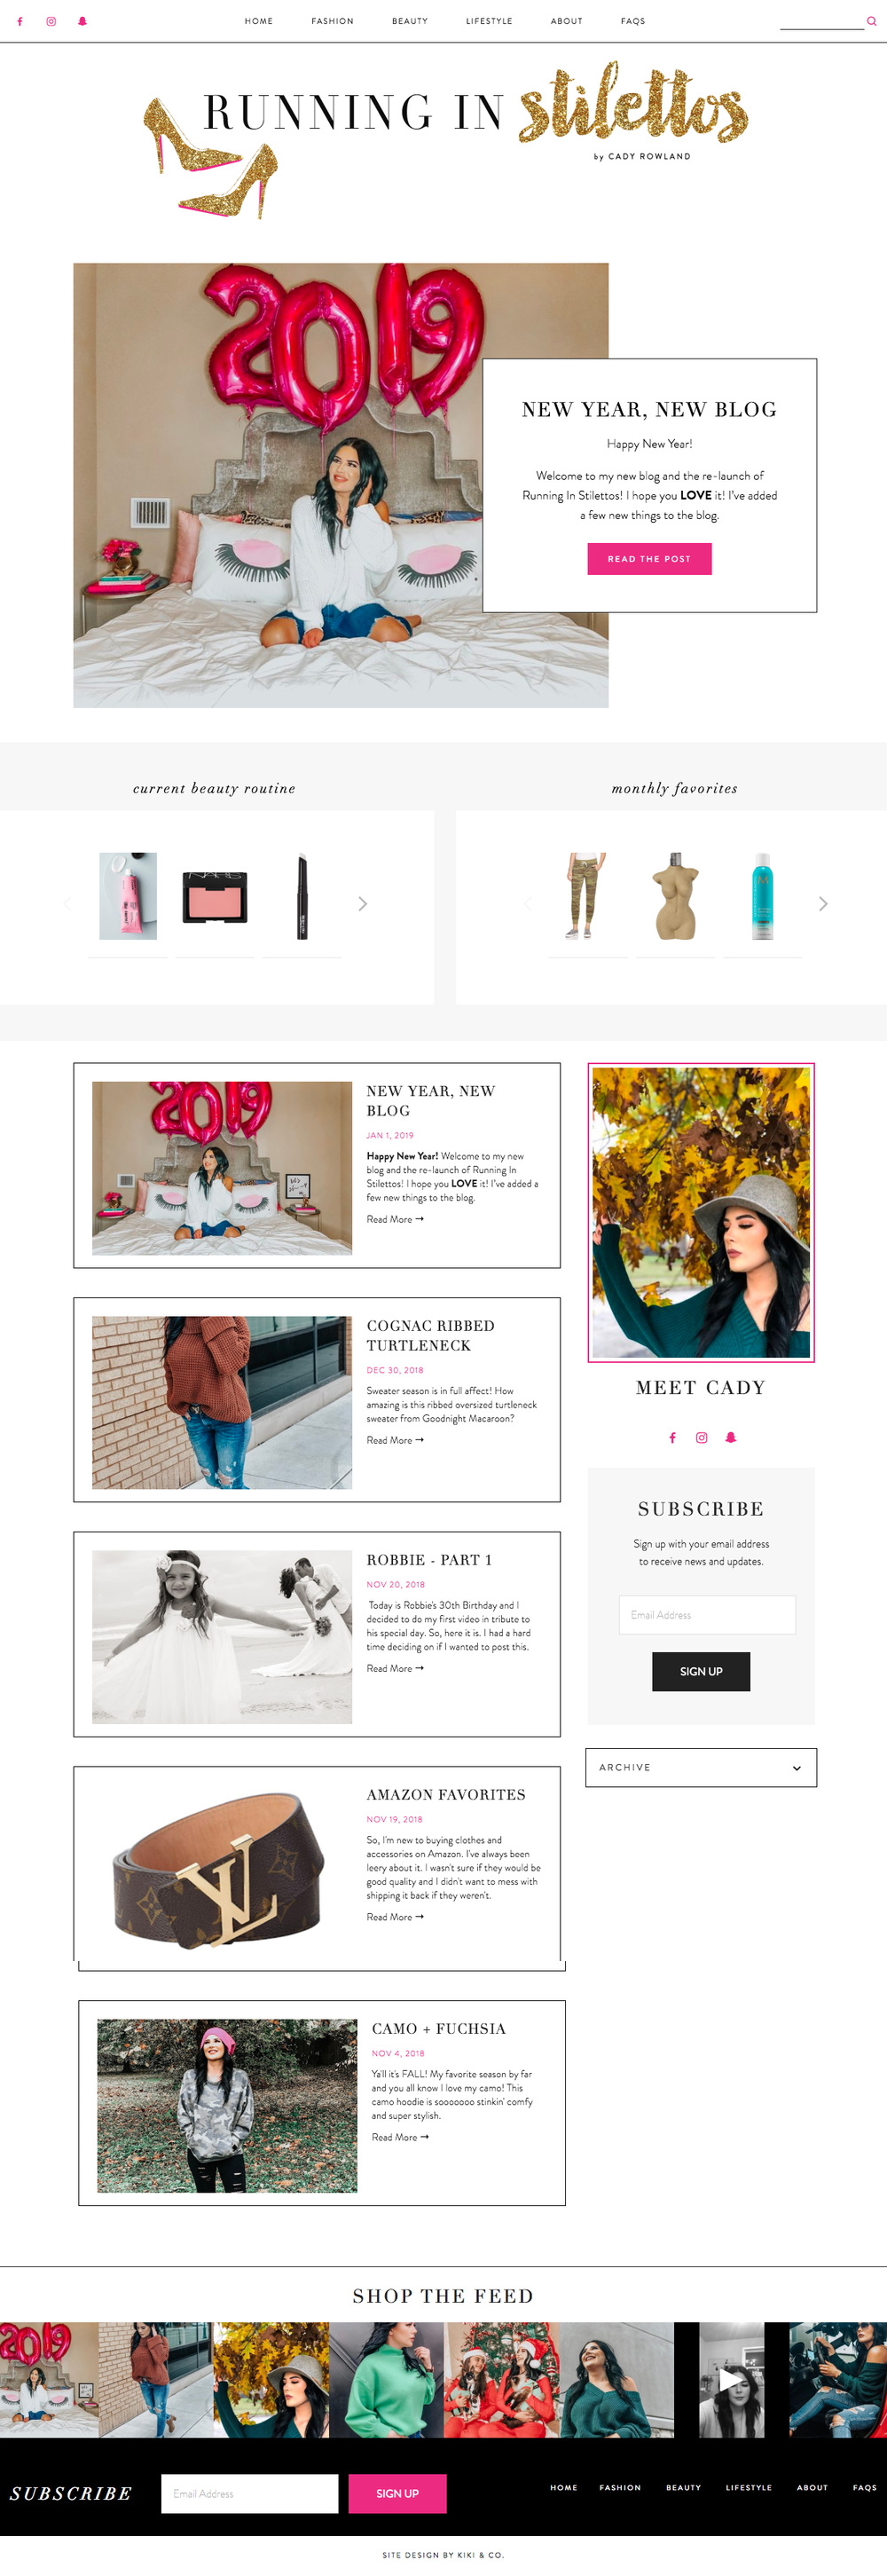 Running in Stilettos Blog Design - Squarespace Platform - Kiki & Co. Creative